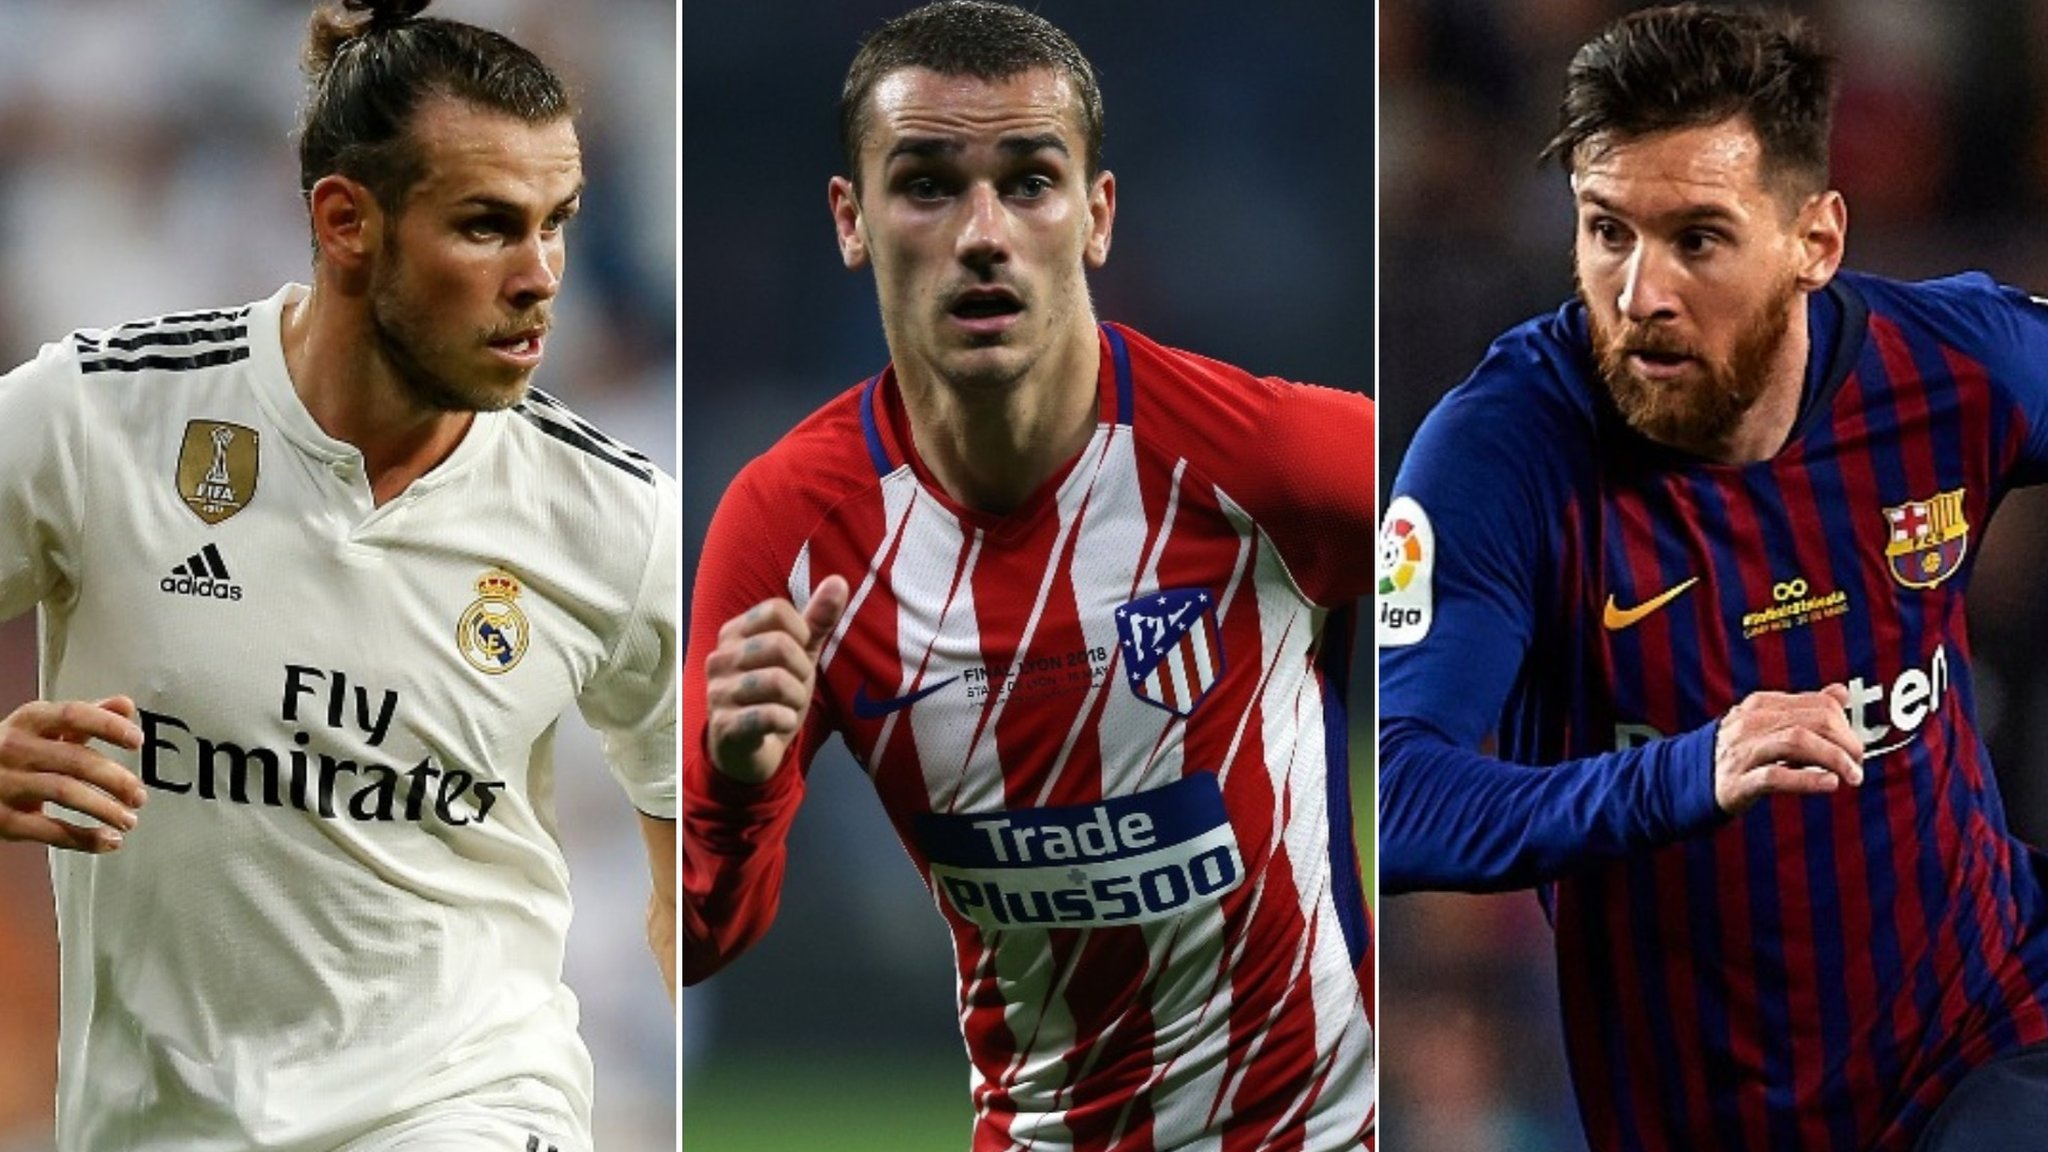 All eyes on La Liga - could Atletico pip Real & Barca to title?